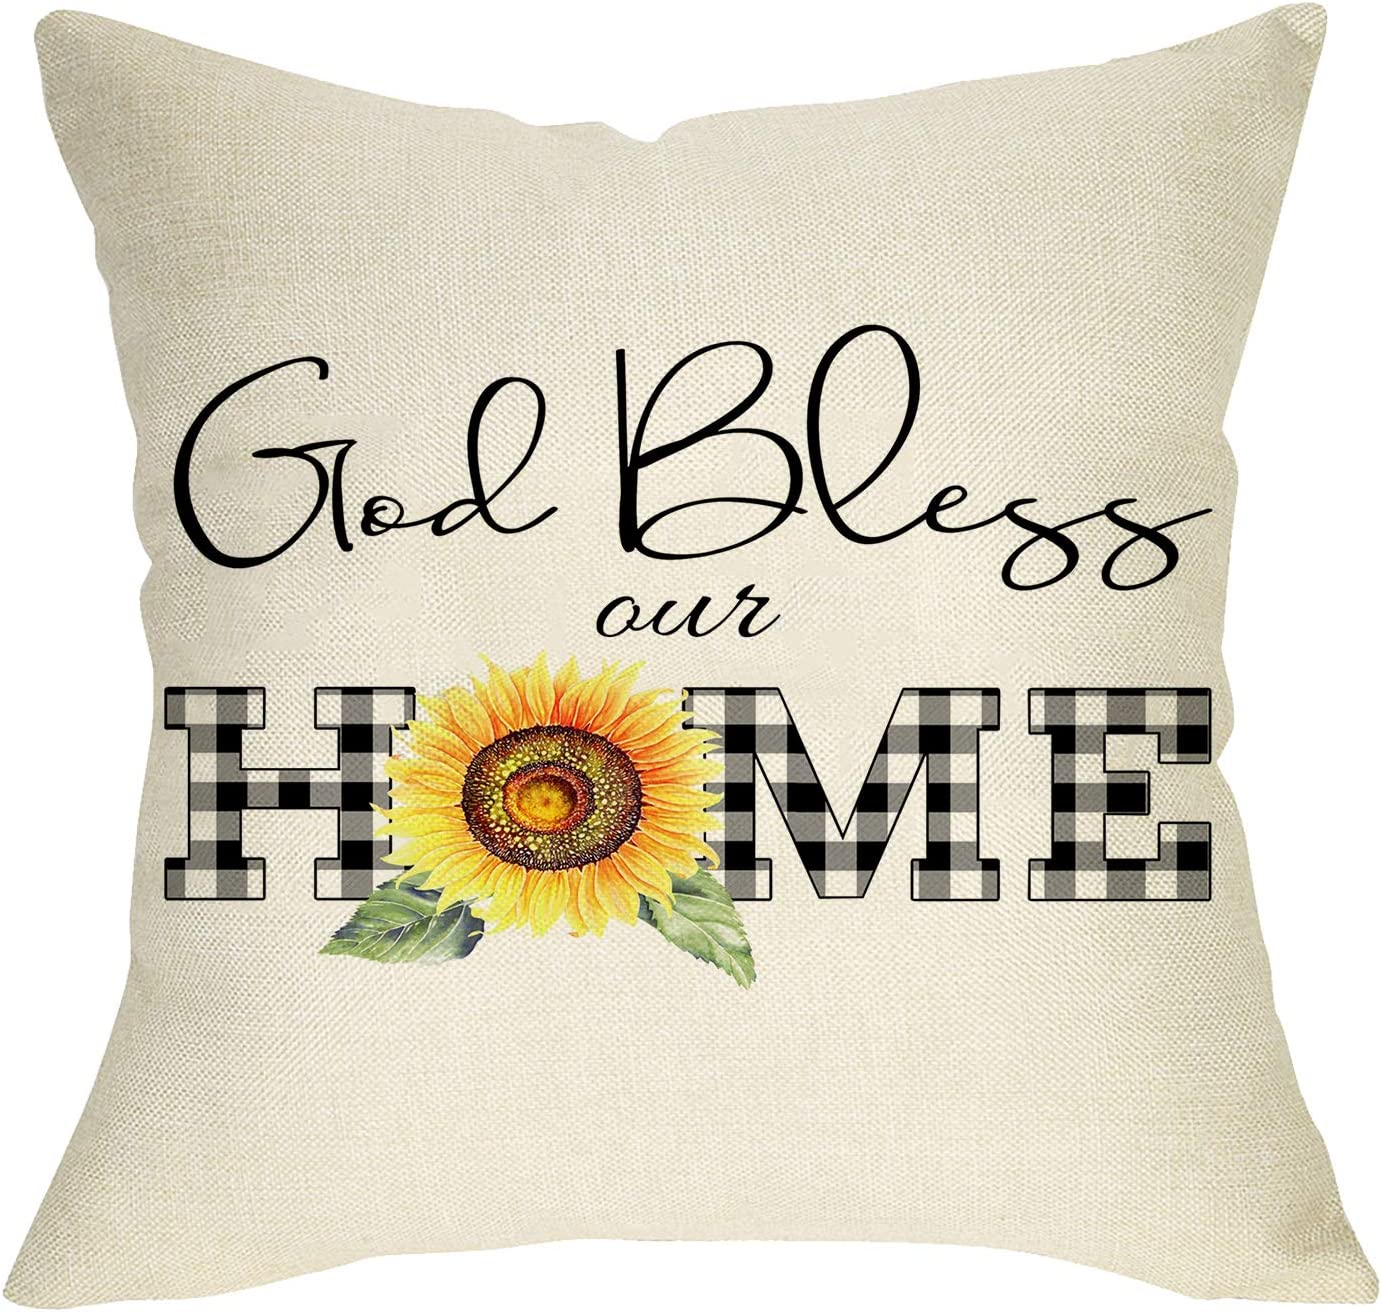 Softxpp God Bless Our Home Decorative Farmhouse Throw Pillow Cover, Buffalo Plaid Check Sunflower Spring Summer Sign Cushion Case, Flower Home Decoration Outside Pillowcase Decor for Sofa Couch 18x18